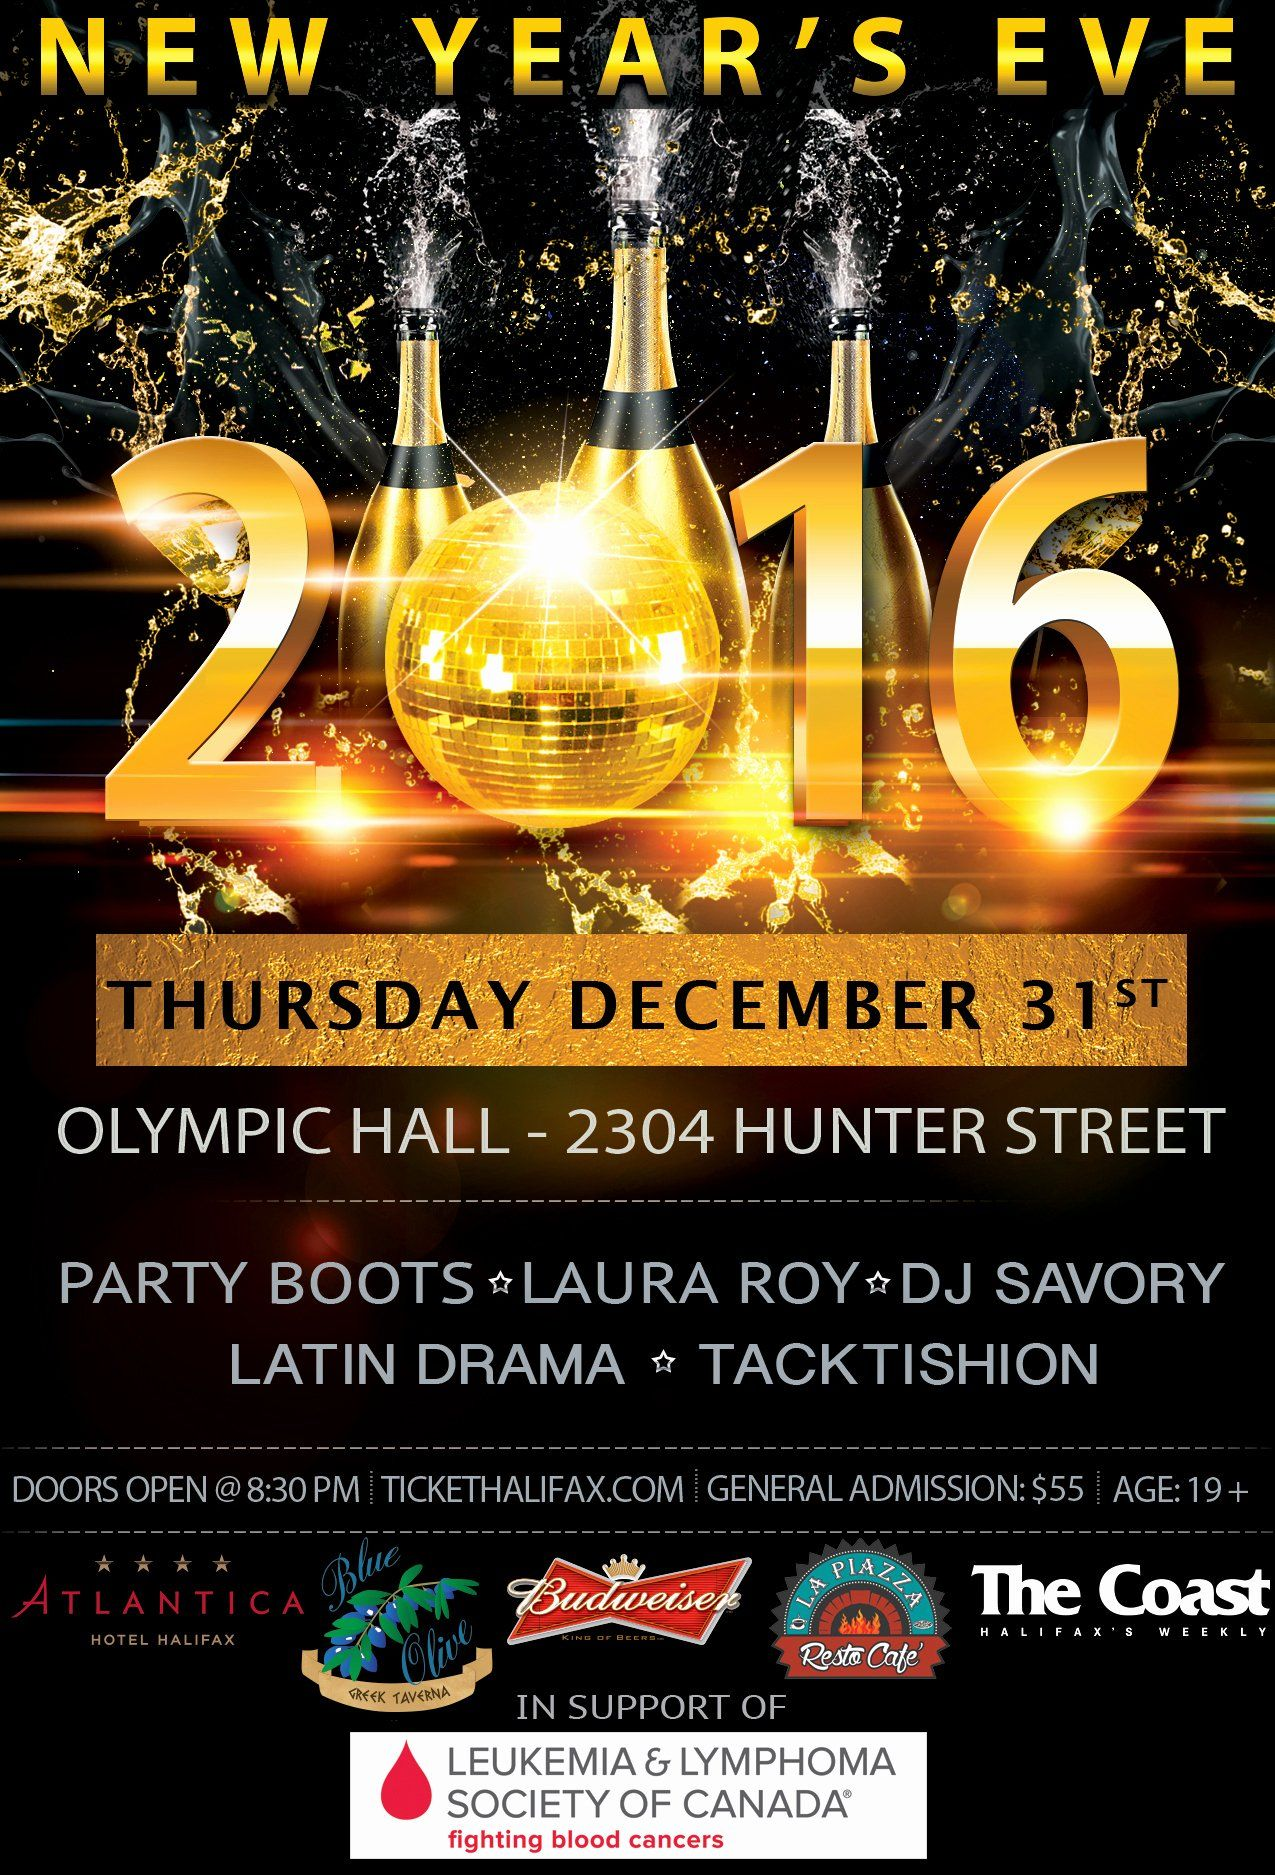 New Years Eve Flyer New New Year S Eve 2016 Party Boots Dj ...